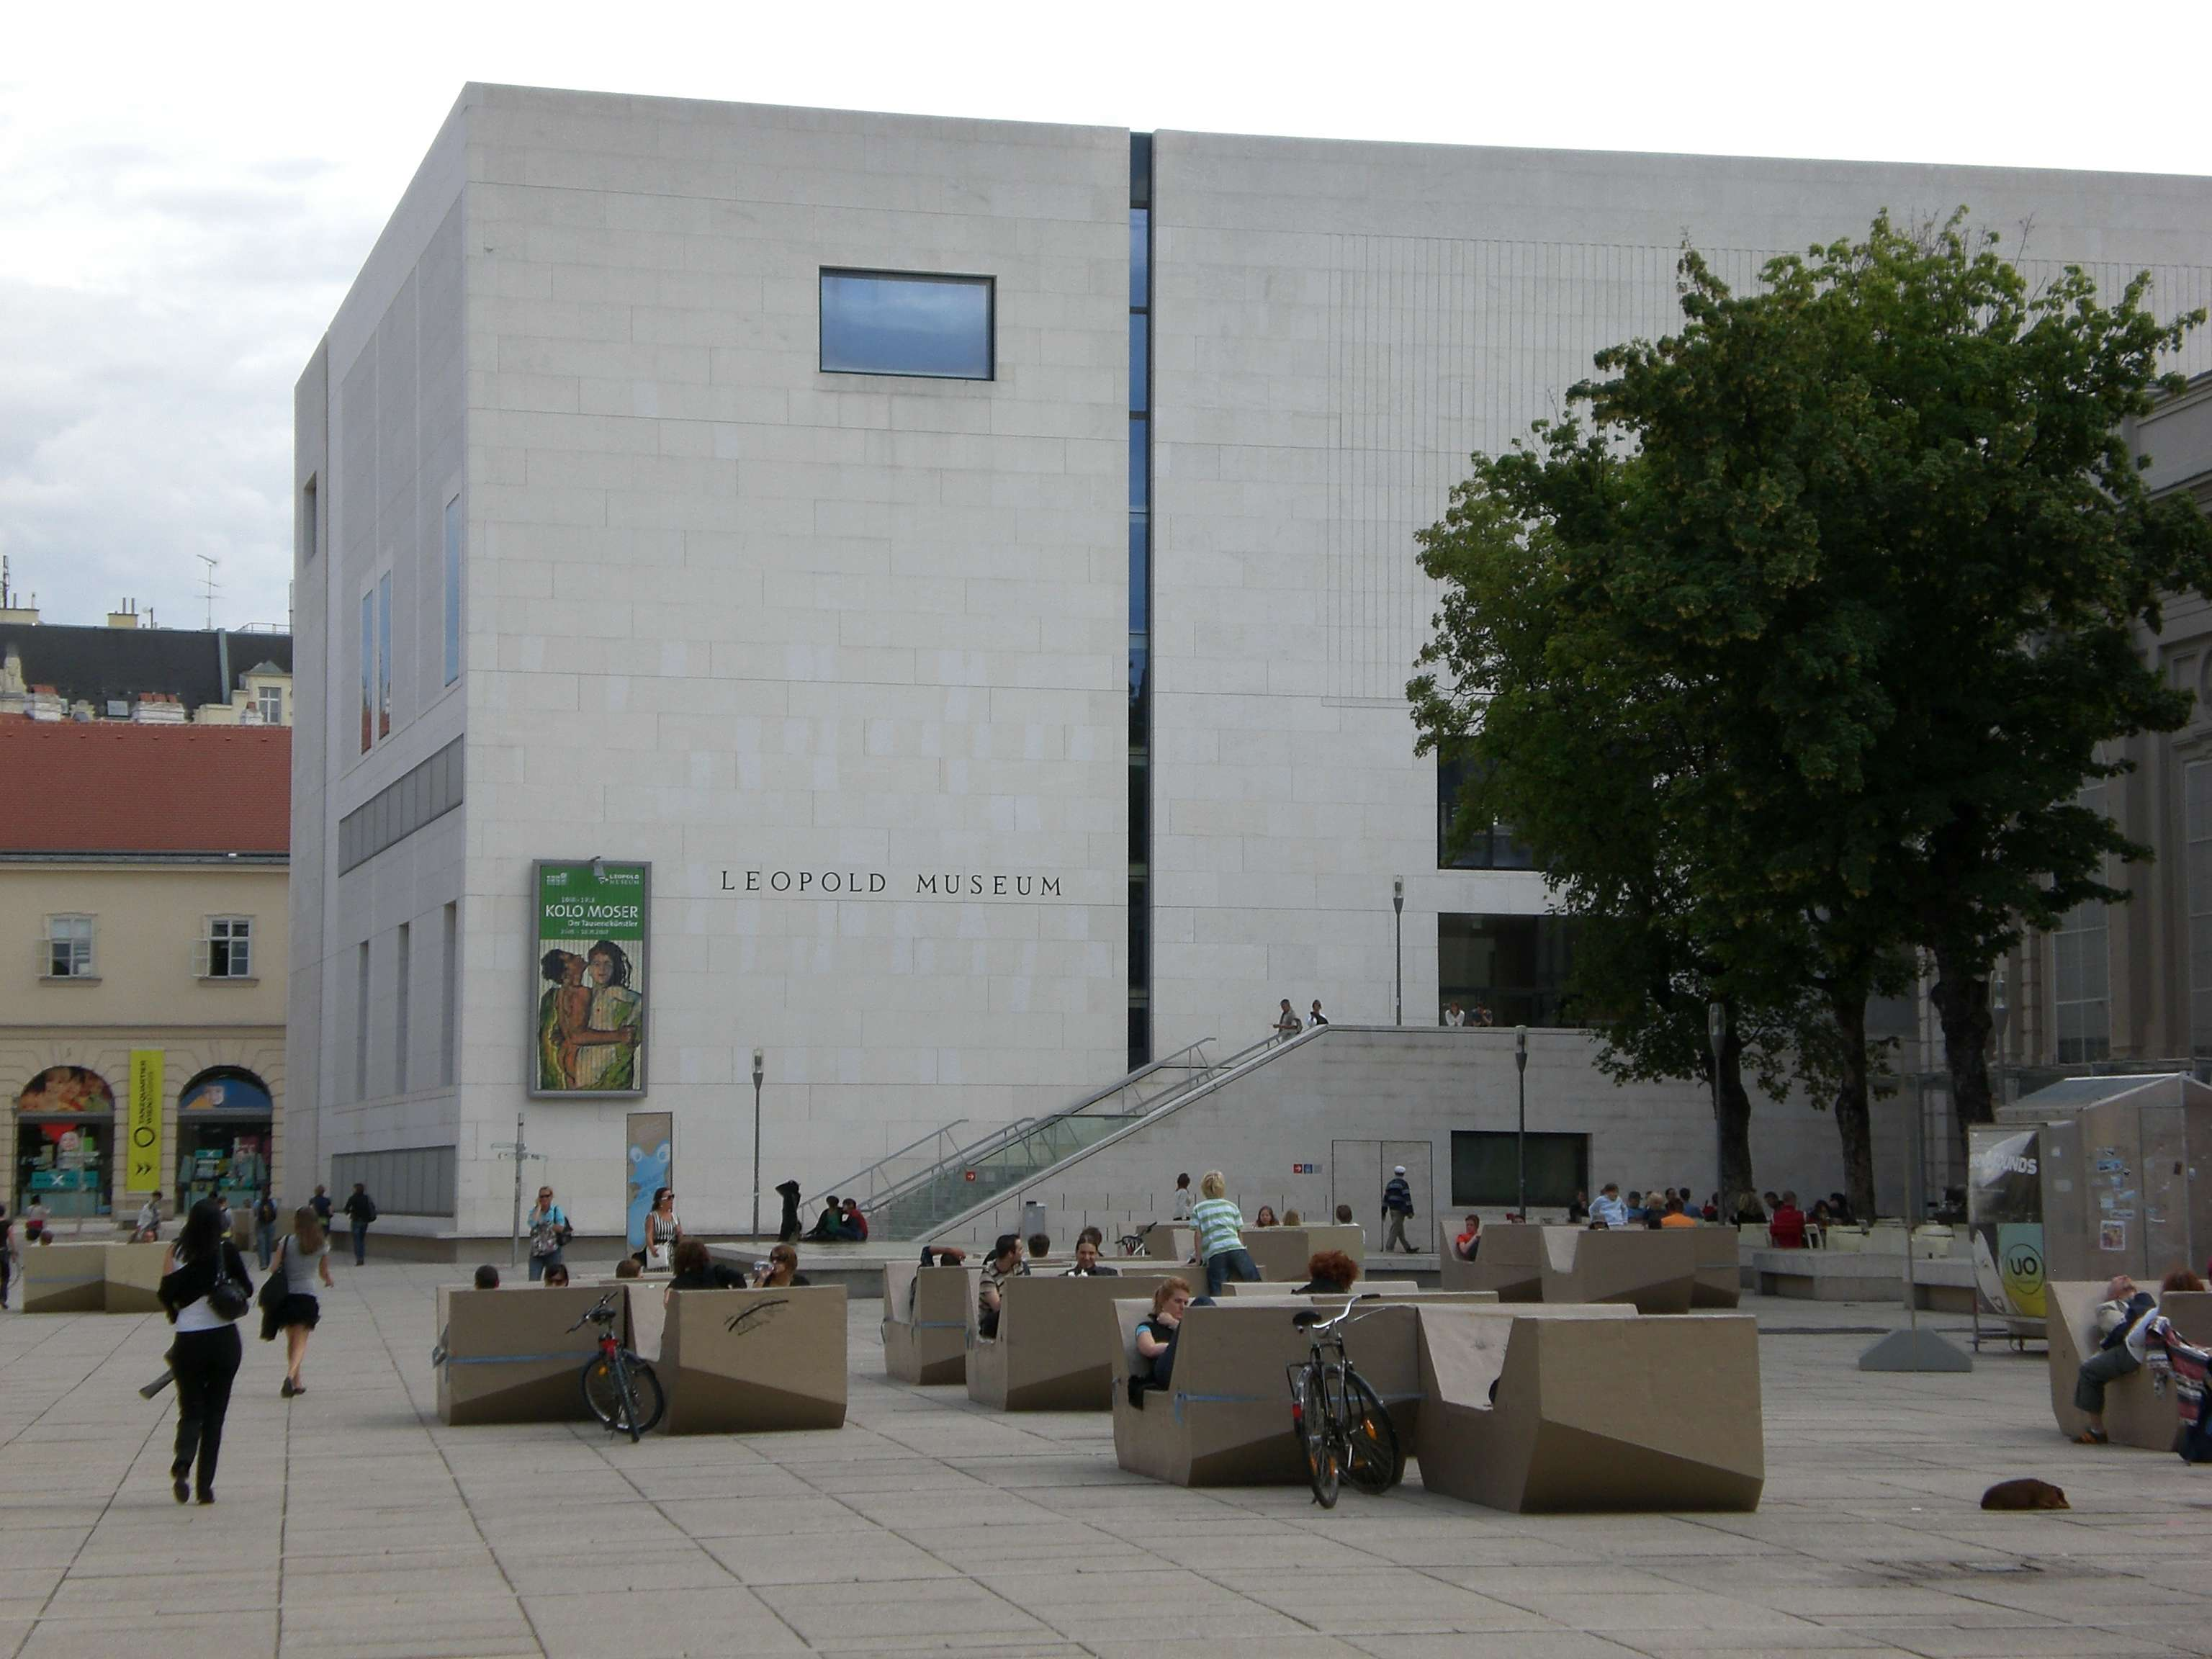 The Leopold Museum